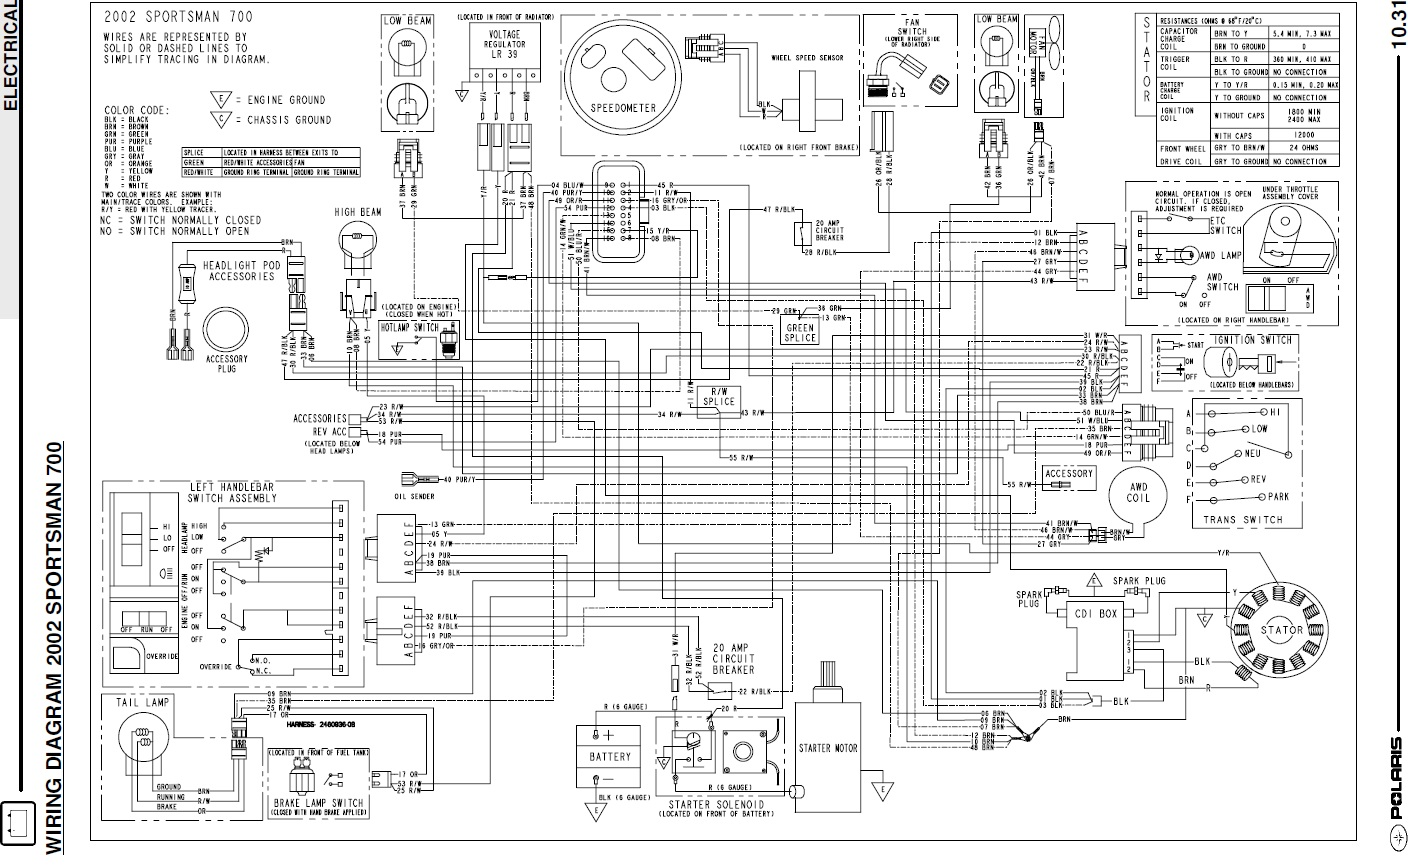 DIAGRAM] 2005 Sportsman 700 Wiring Diagram FULL Version HD Quality Wiring  Diagram - NUTONEDIAGRAMS.BELEN-RODRIGUEZ.ITbelen-rodriguez.it